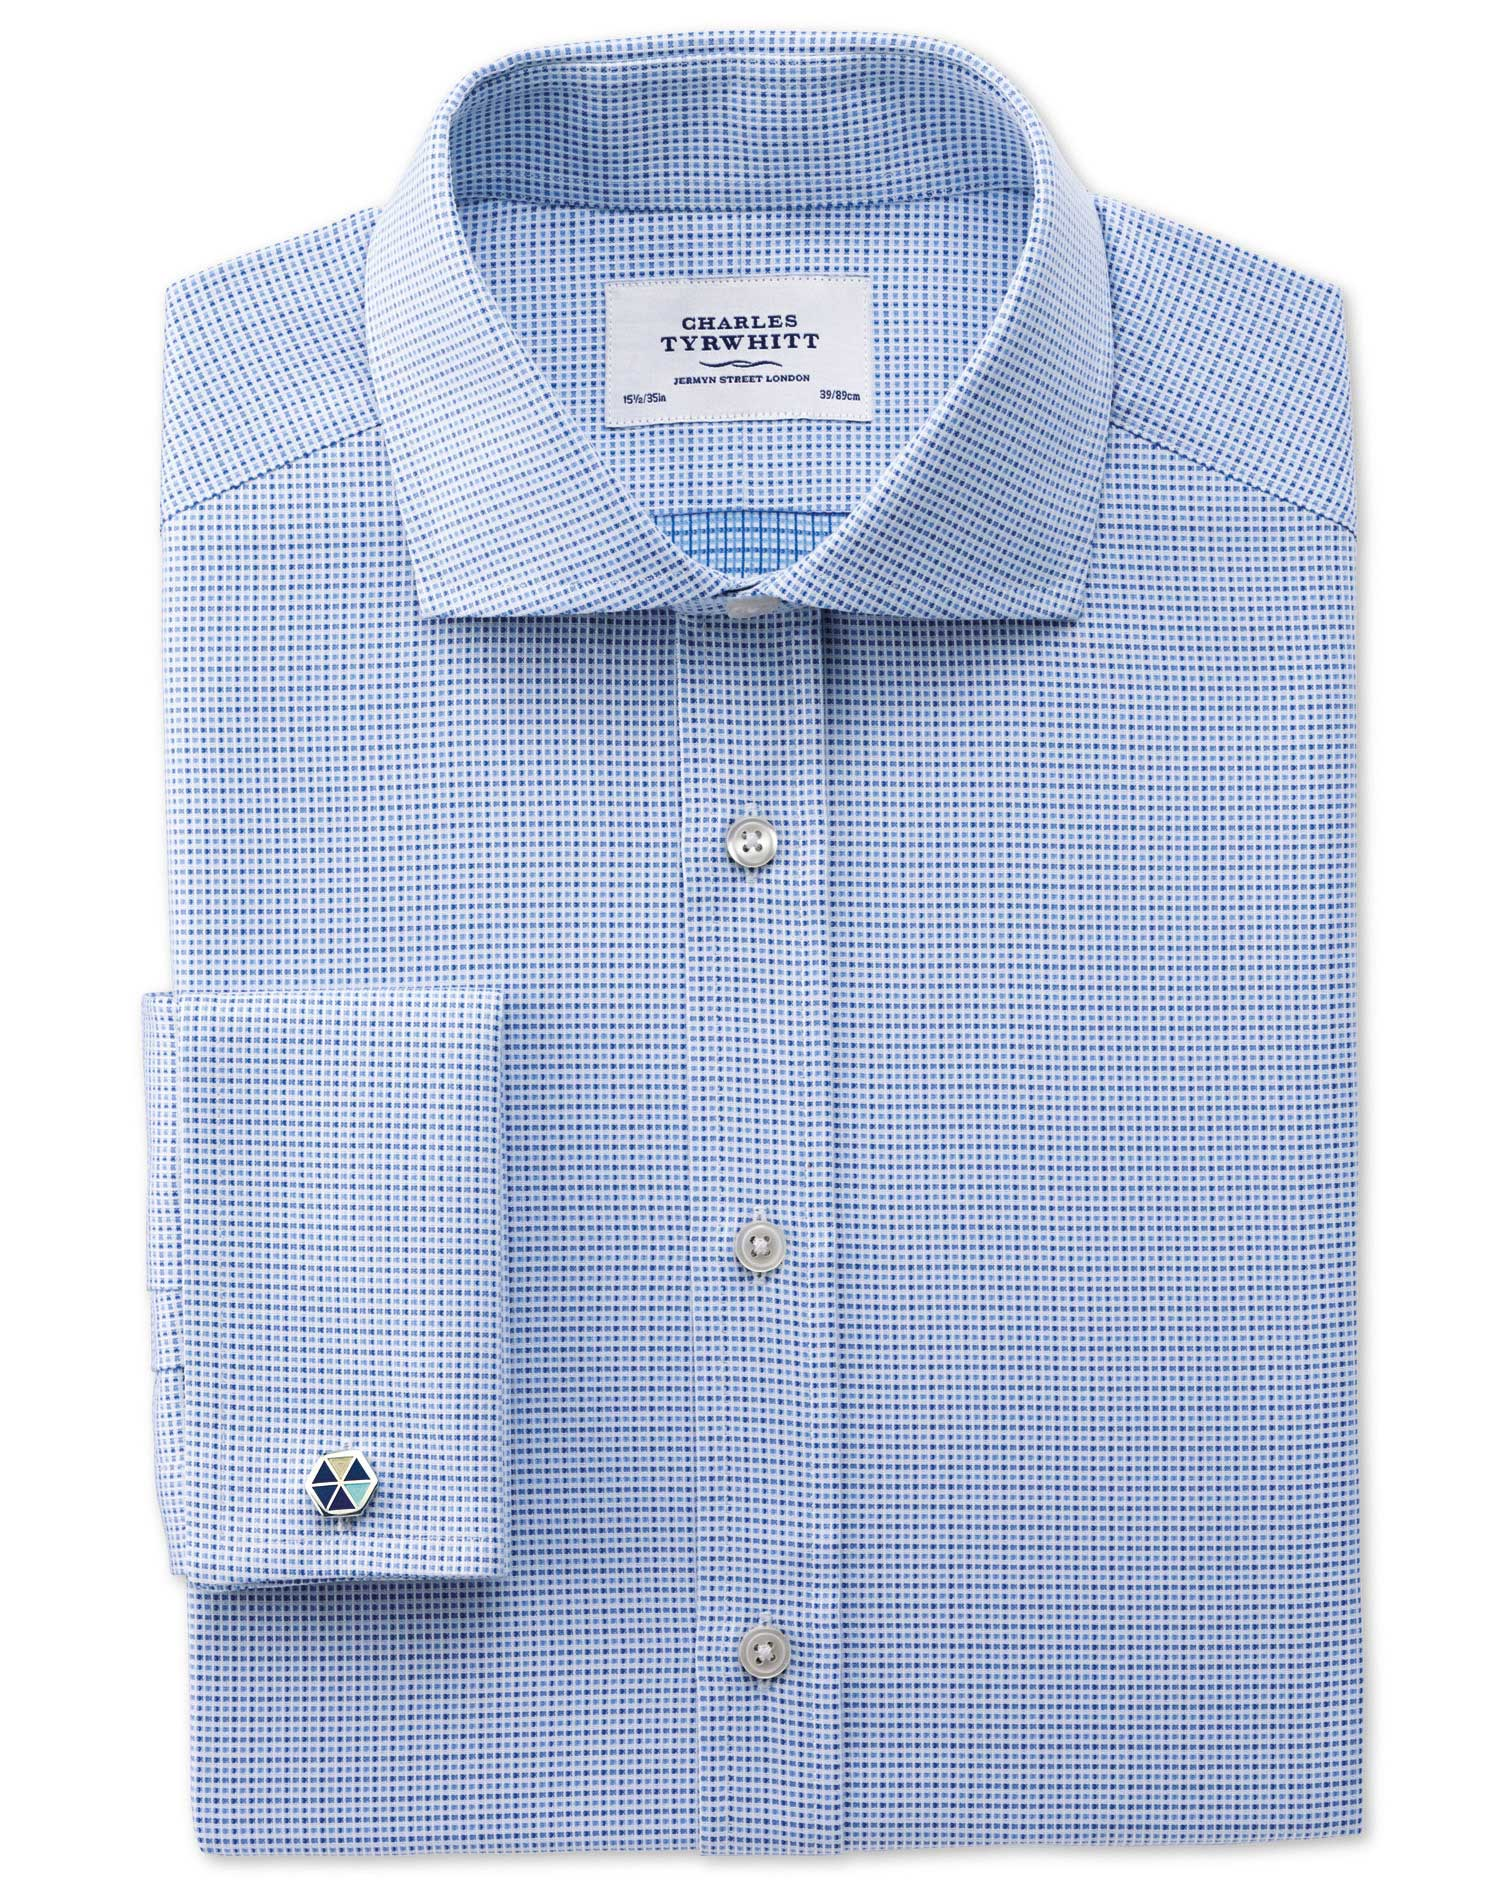 Extra Slim Fit Cutaway Collar Egyptian Cotton Textured Blue Formal Shirt Single Cuff Size 16/33 by C